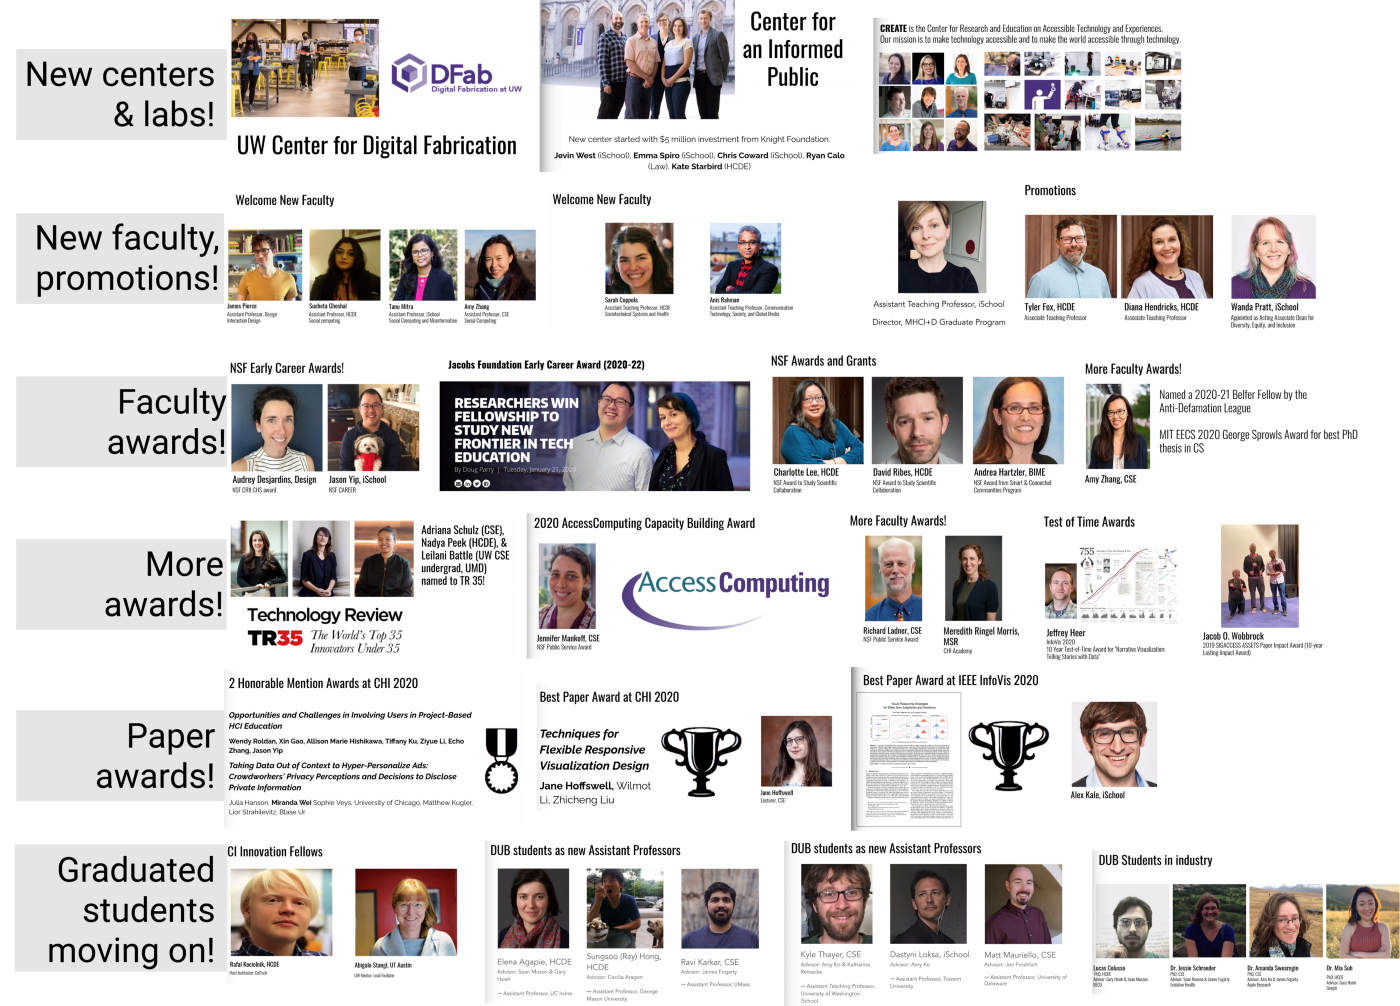 Collage of slides recognizing new centers and labs, awards, promotions, and paper awards (described in text below)